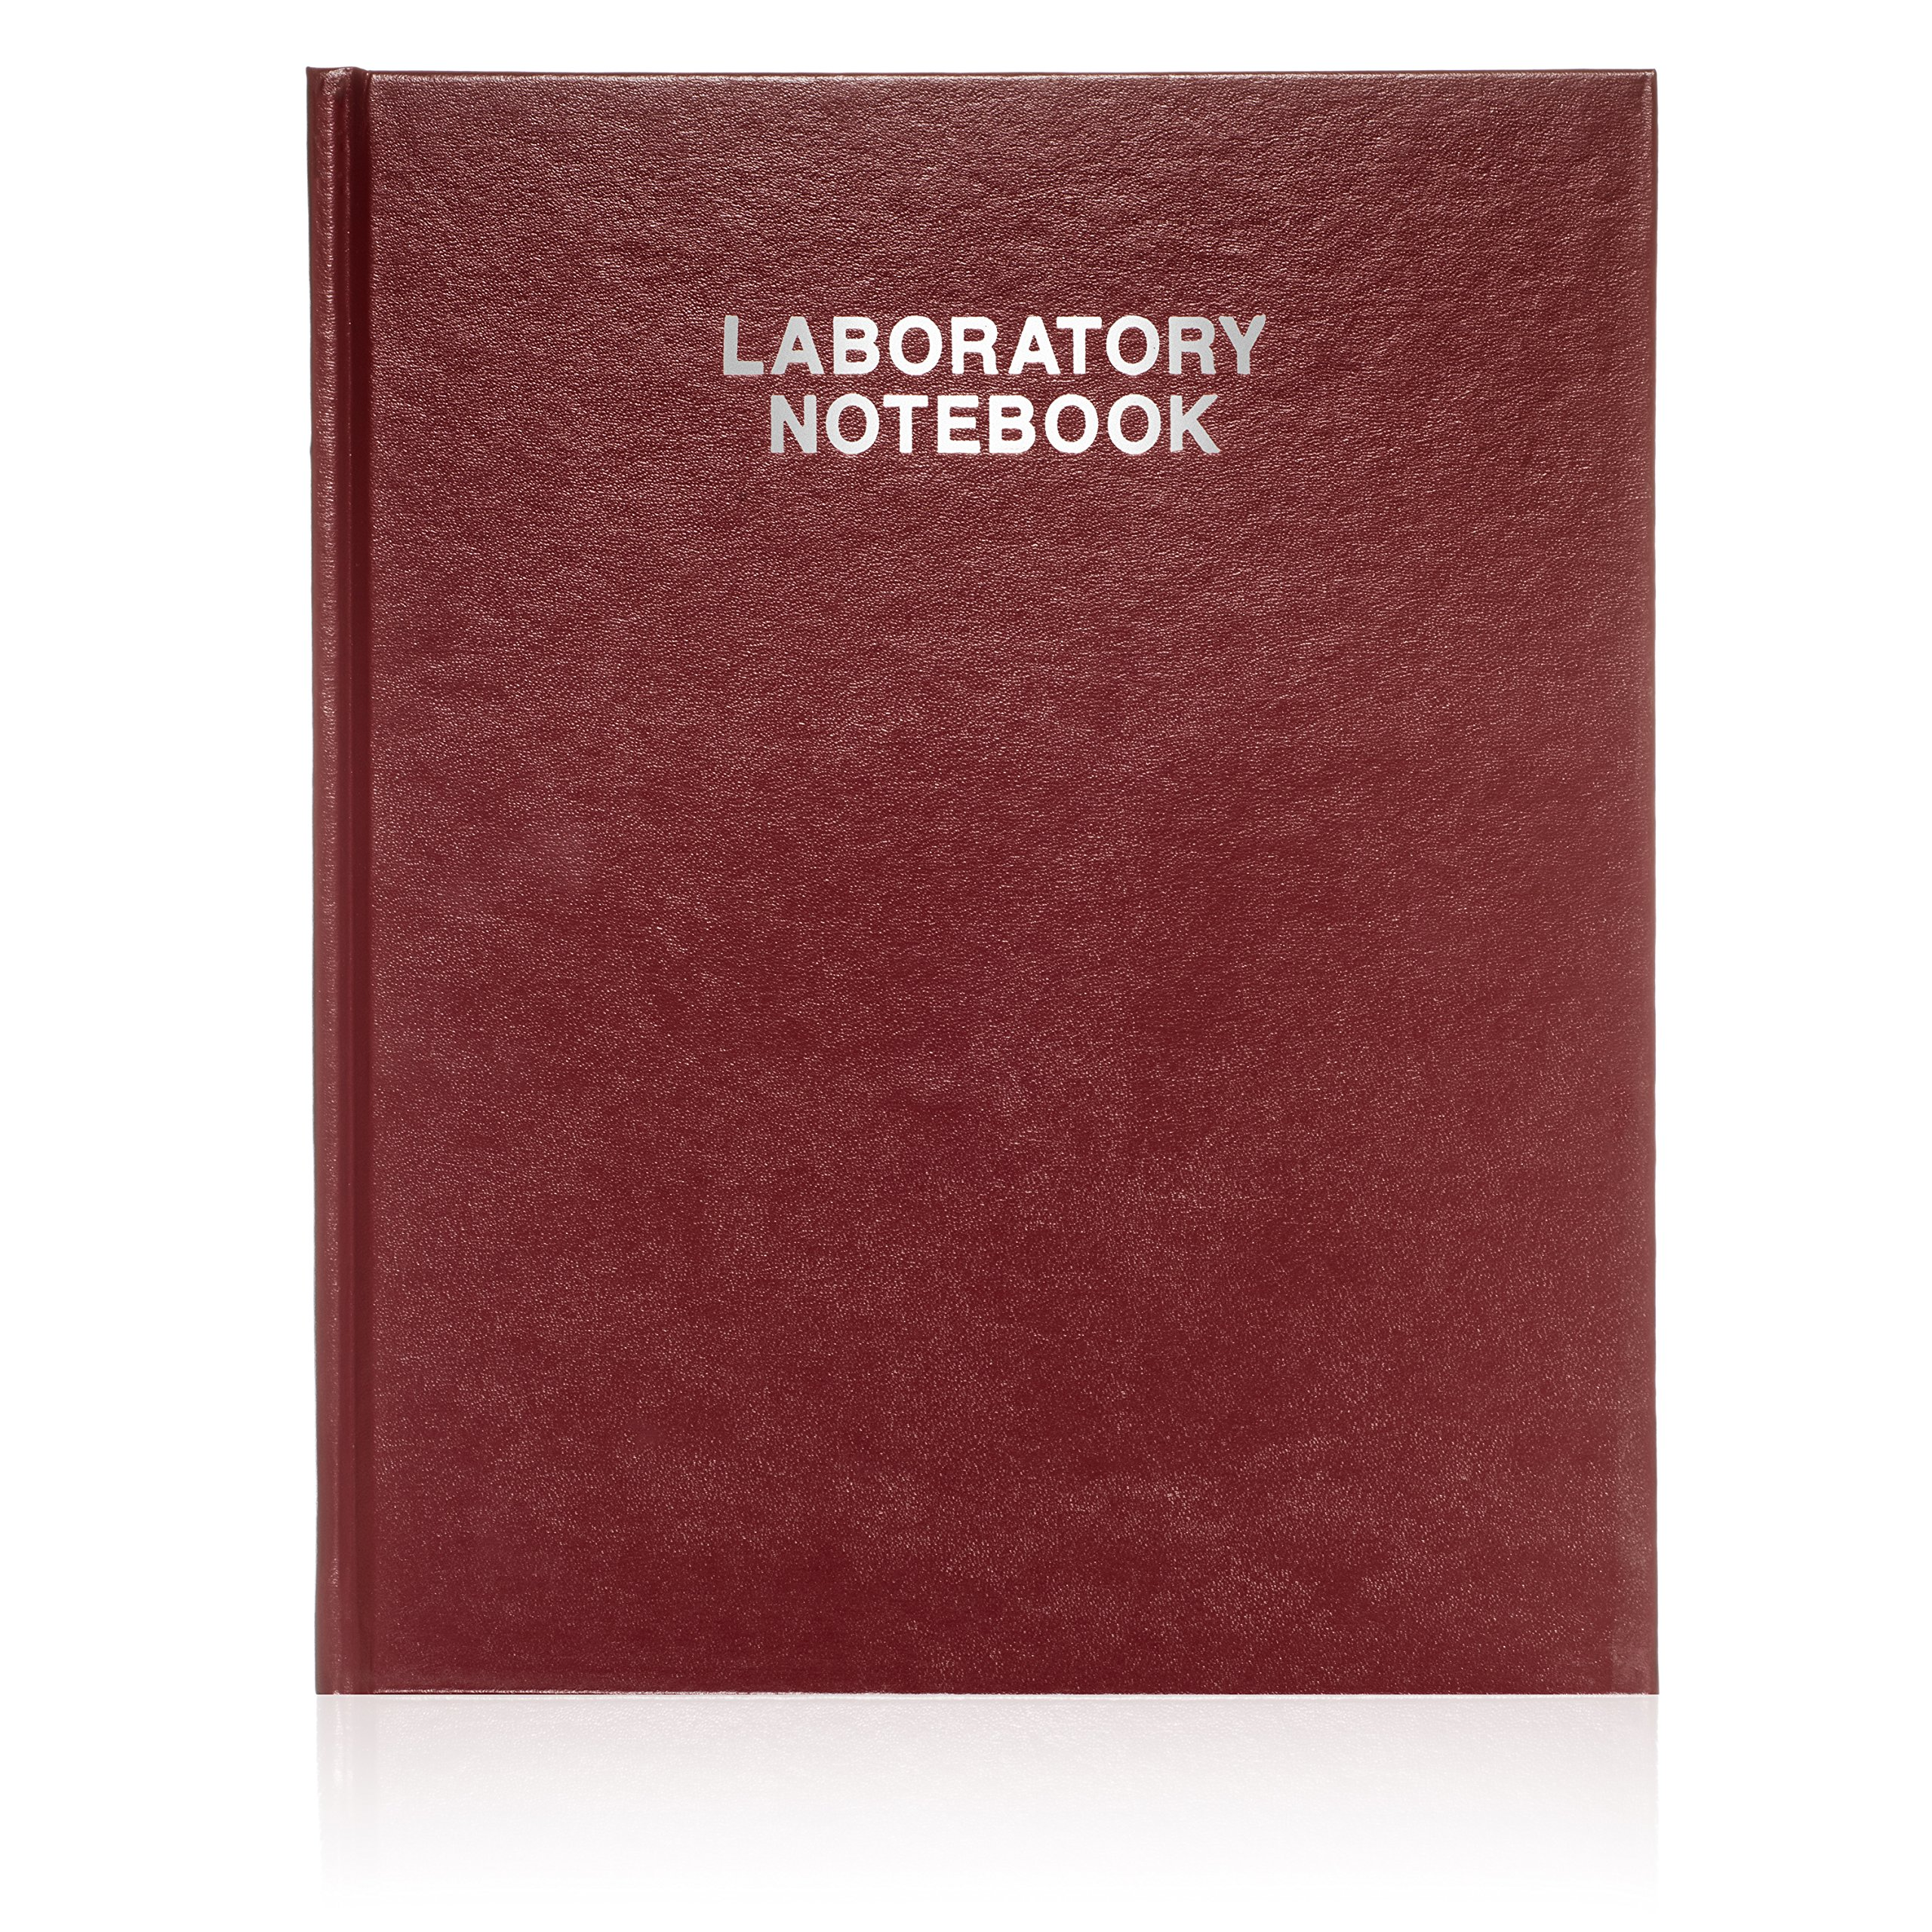 Scientific Notebook Company , Laboratory Notebook, 192 Pages 3001HC Burgundy Hard Cover